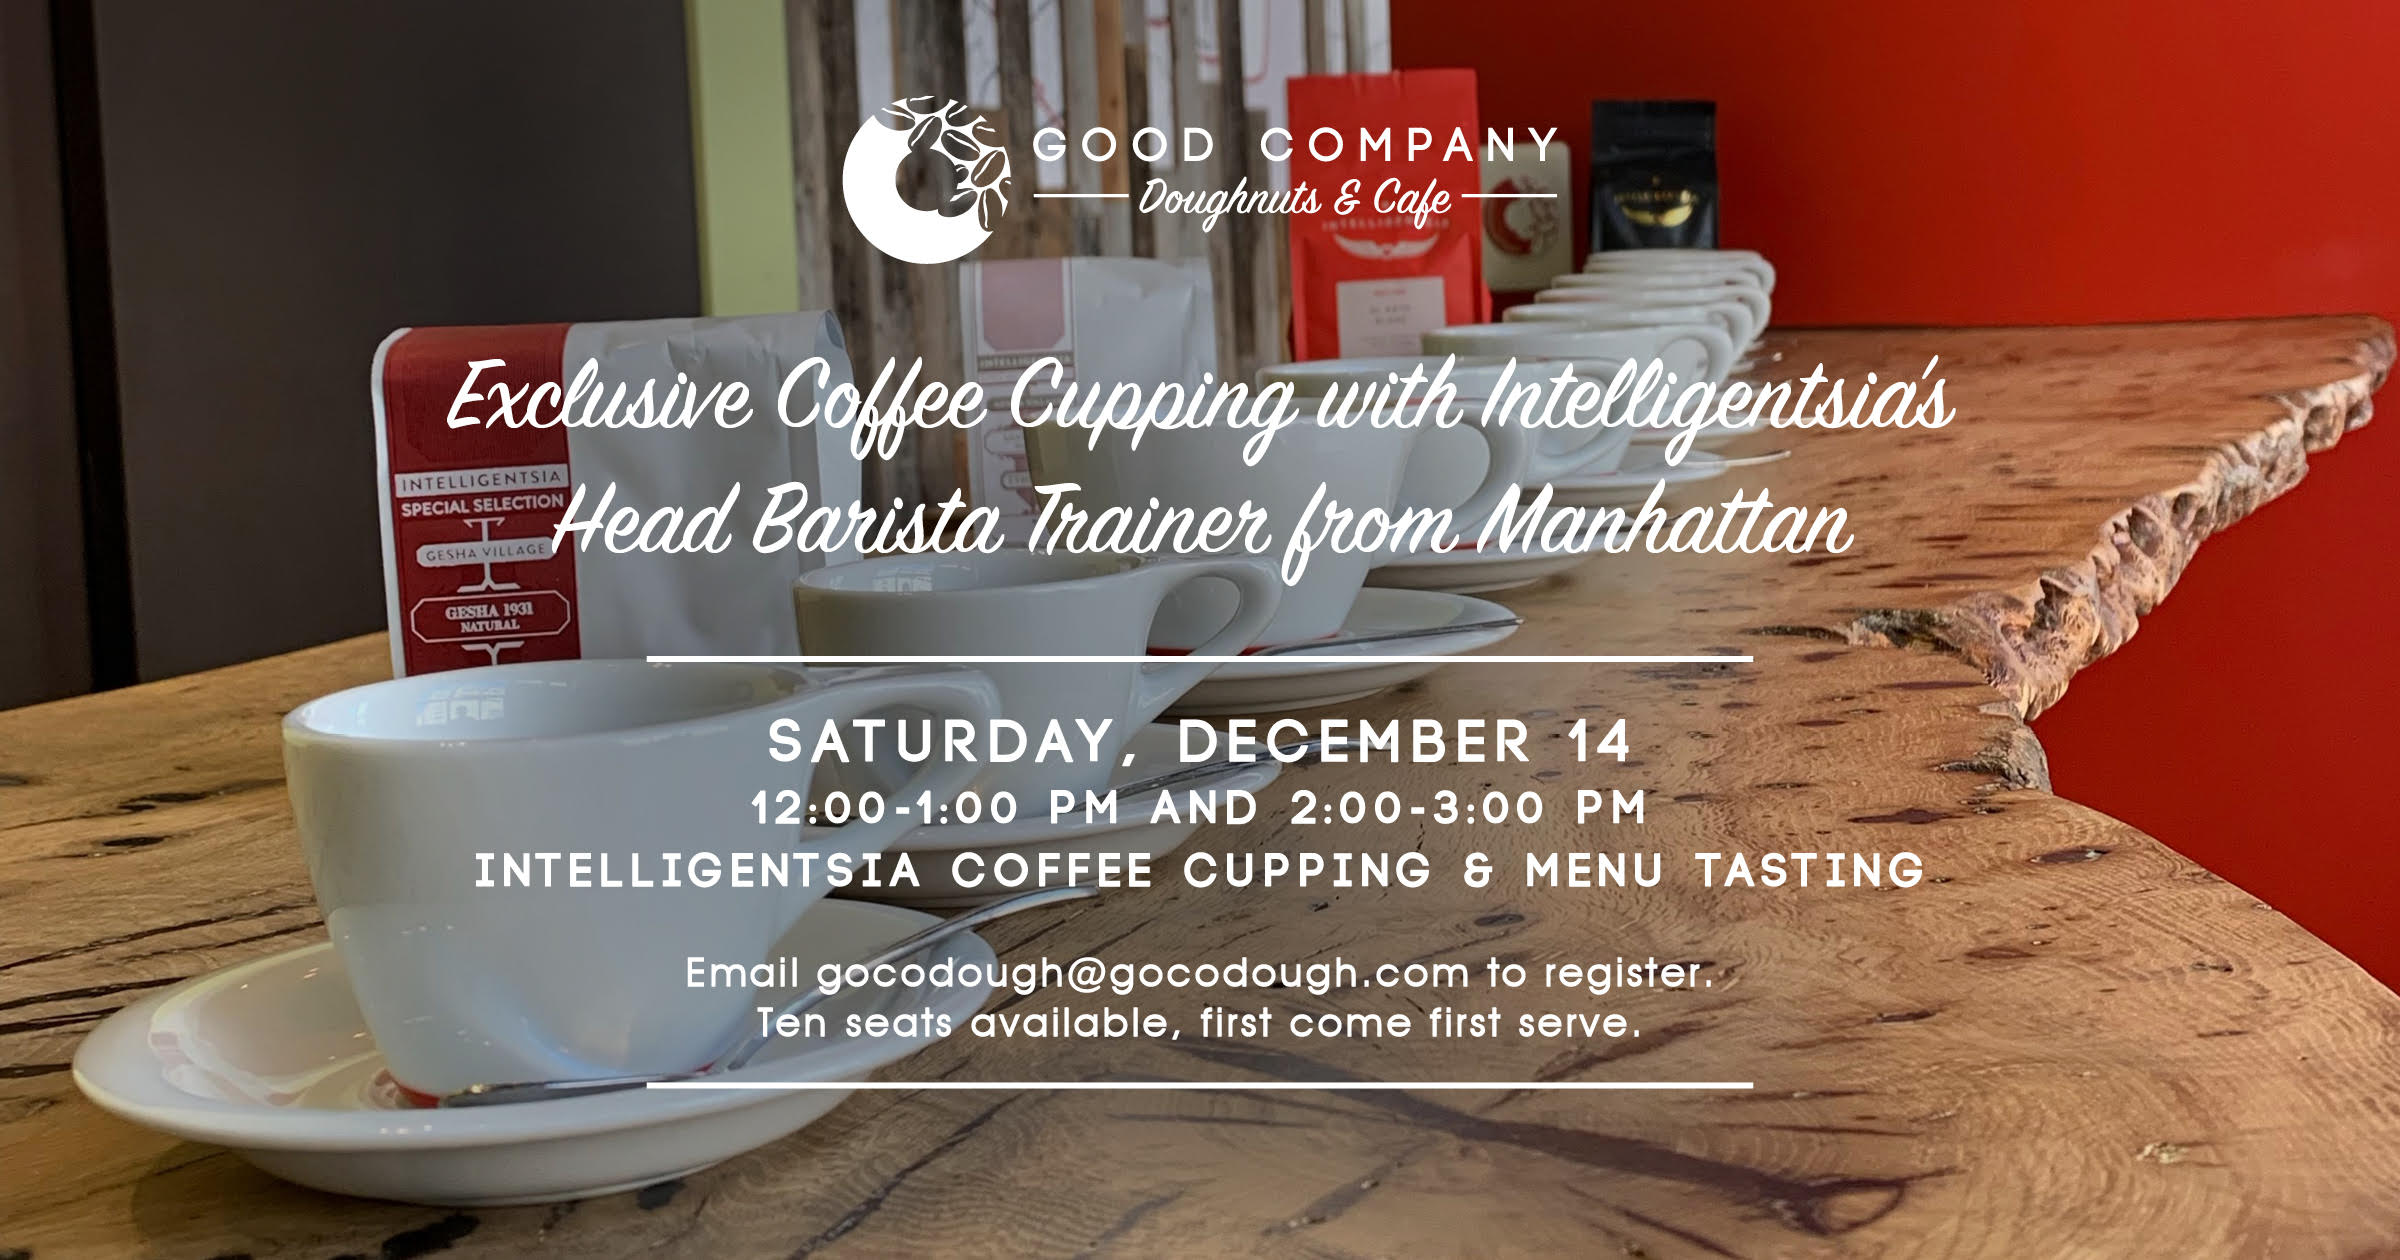 Coffee Cupping at Good Company Doughnuts & Cafe